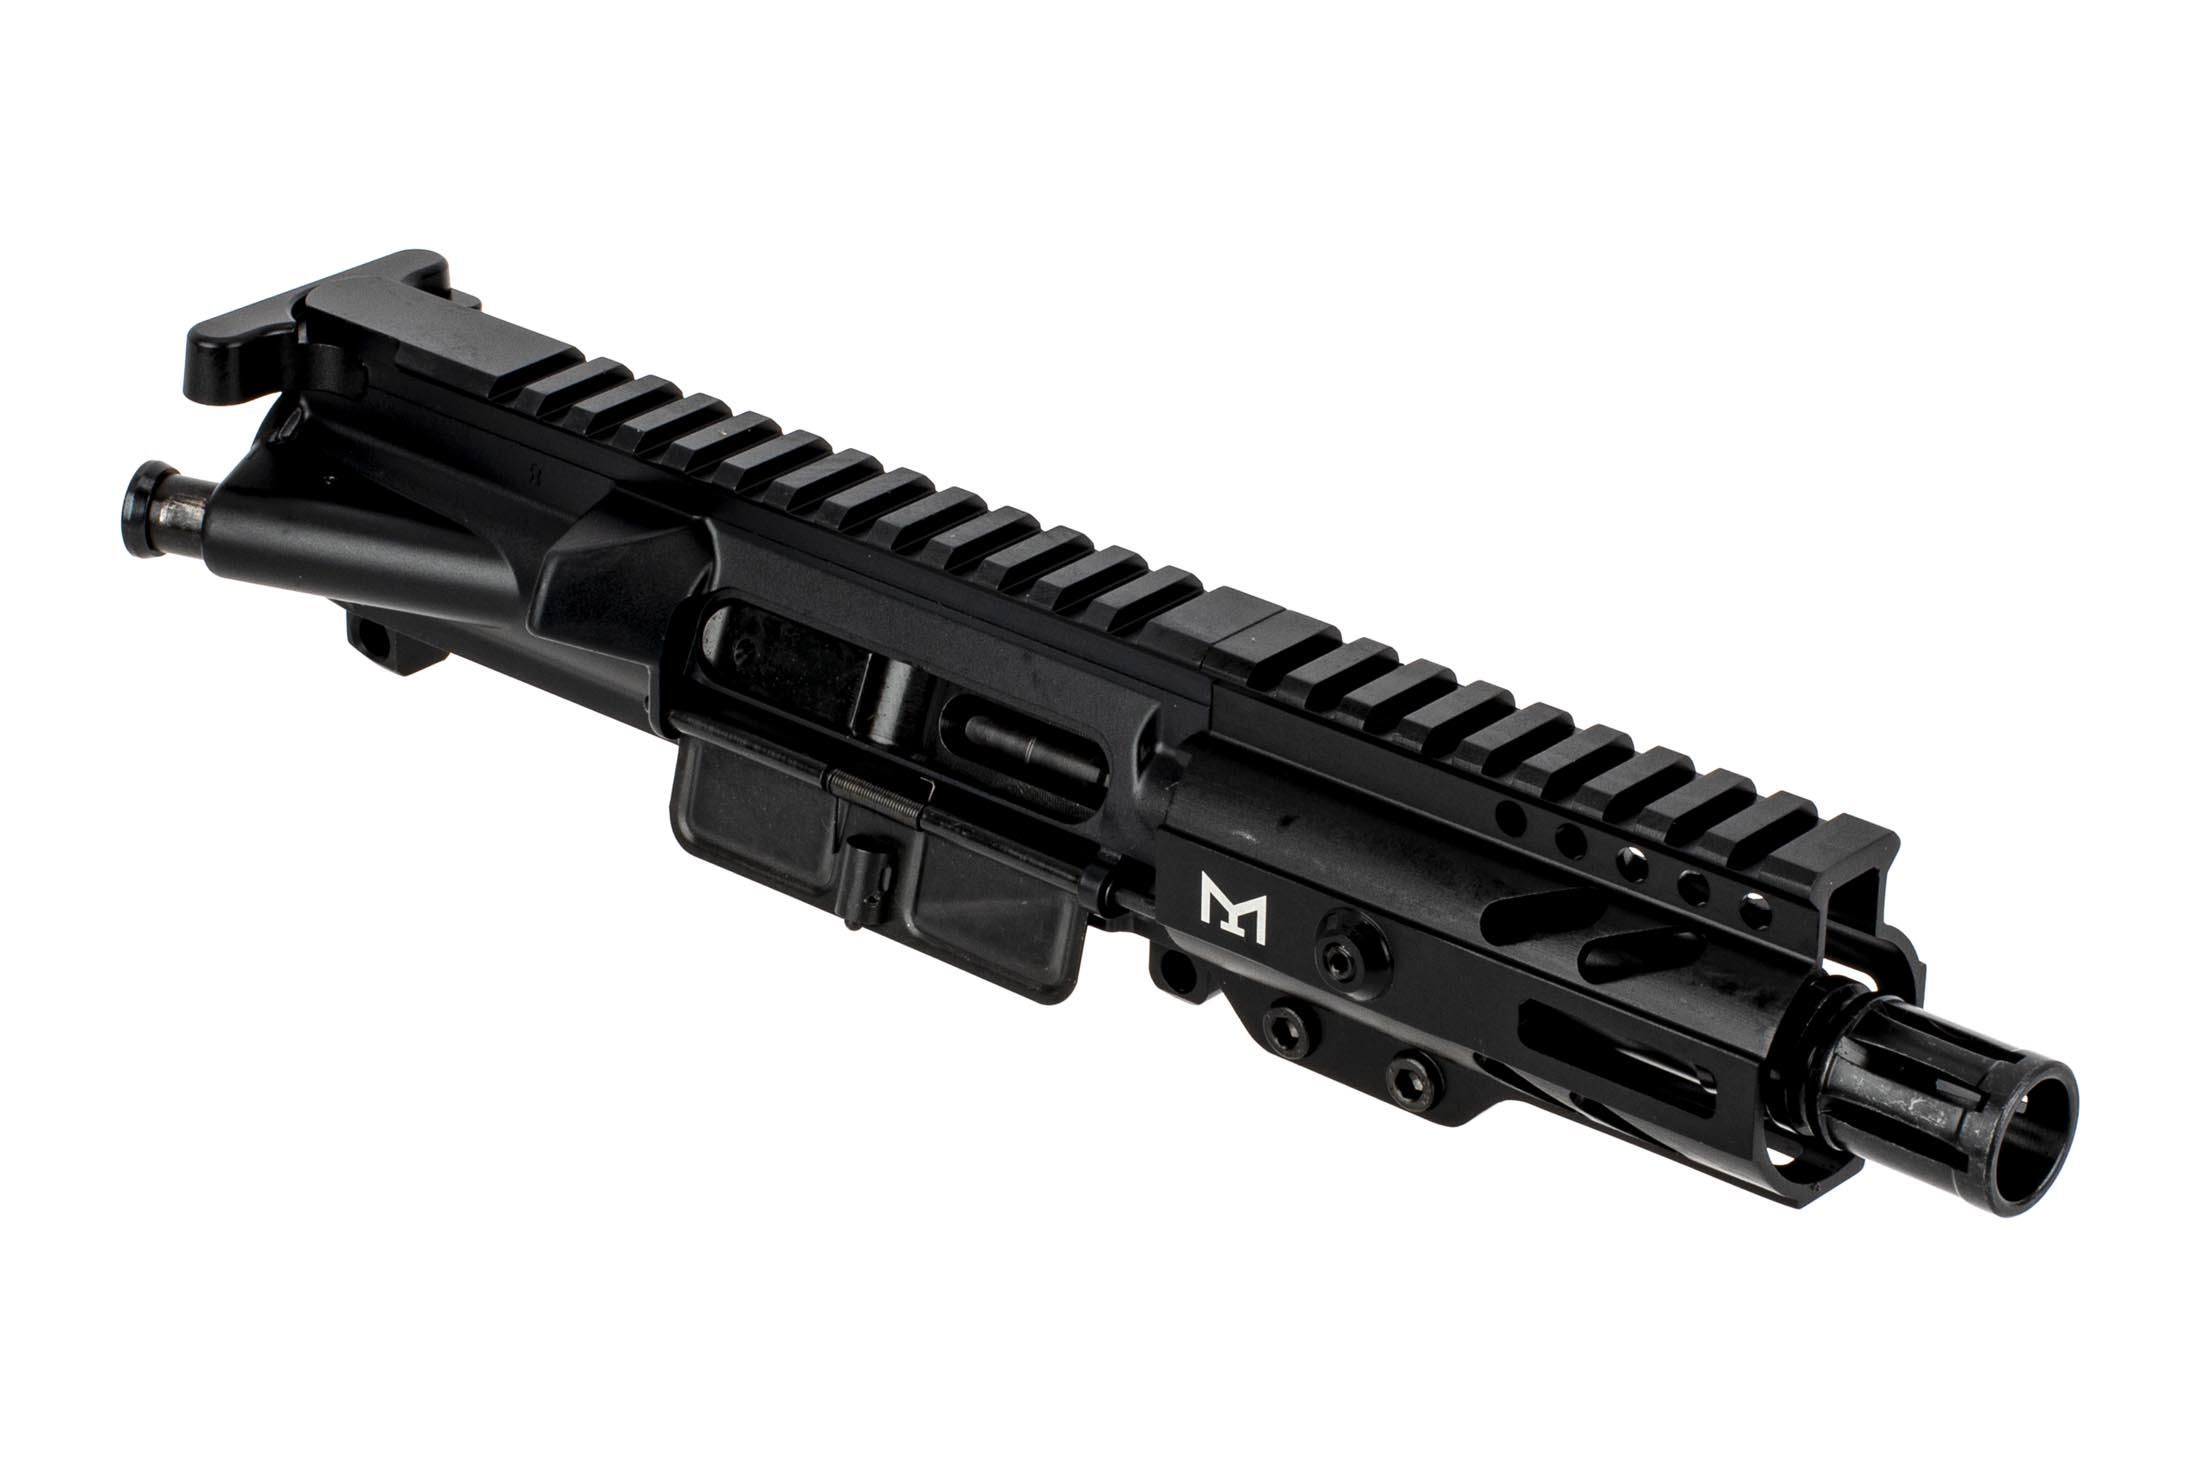 Tiger Rock 9mm AR-9 Pistol Length Complete Upper with Super Slim M-LOK Handguard - 4.5